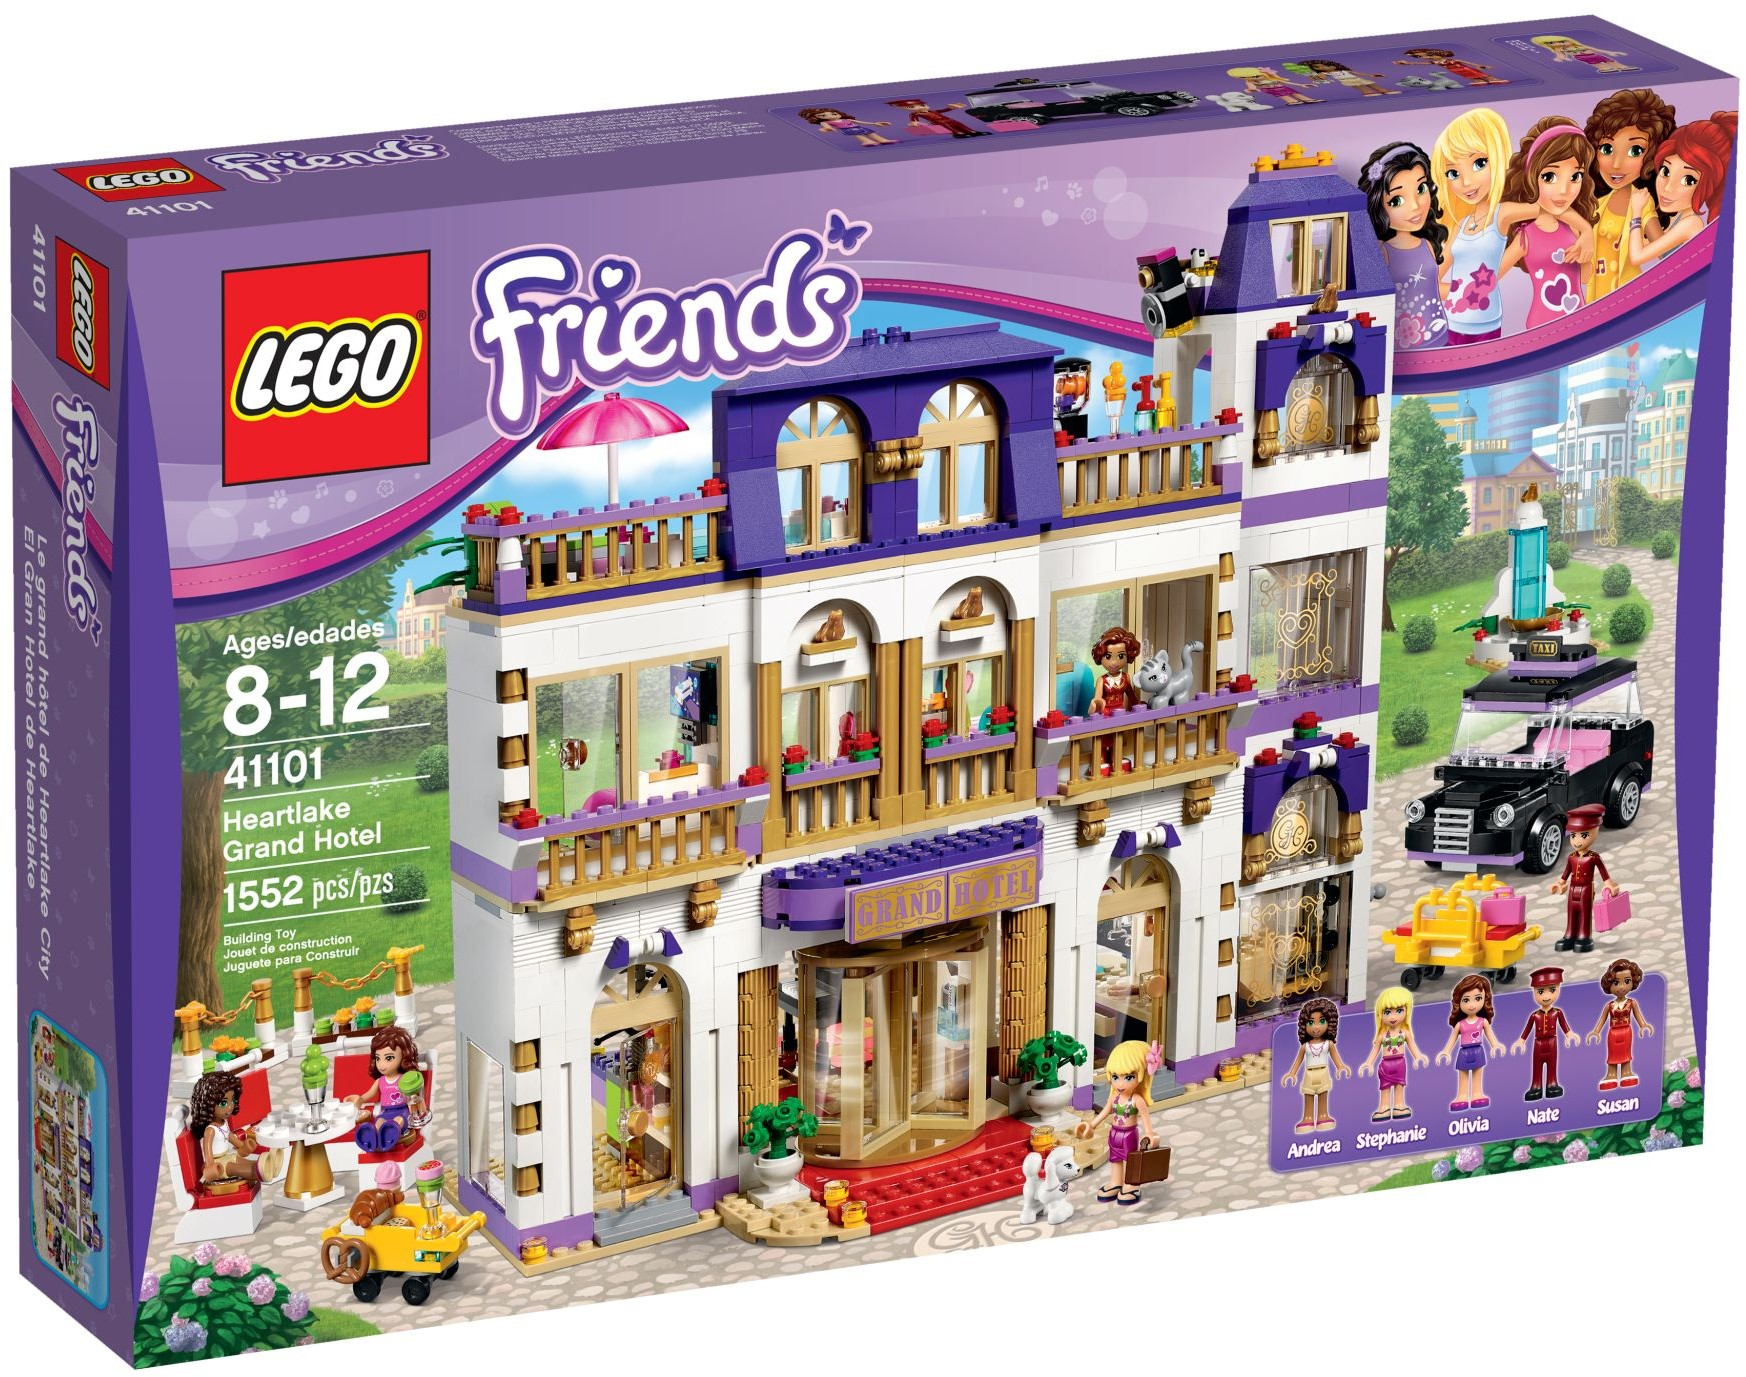 Lego Friends 41101 Heartlake Grand Hotel Review Brickset Lego Set